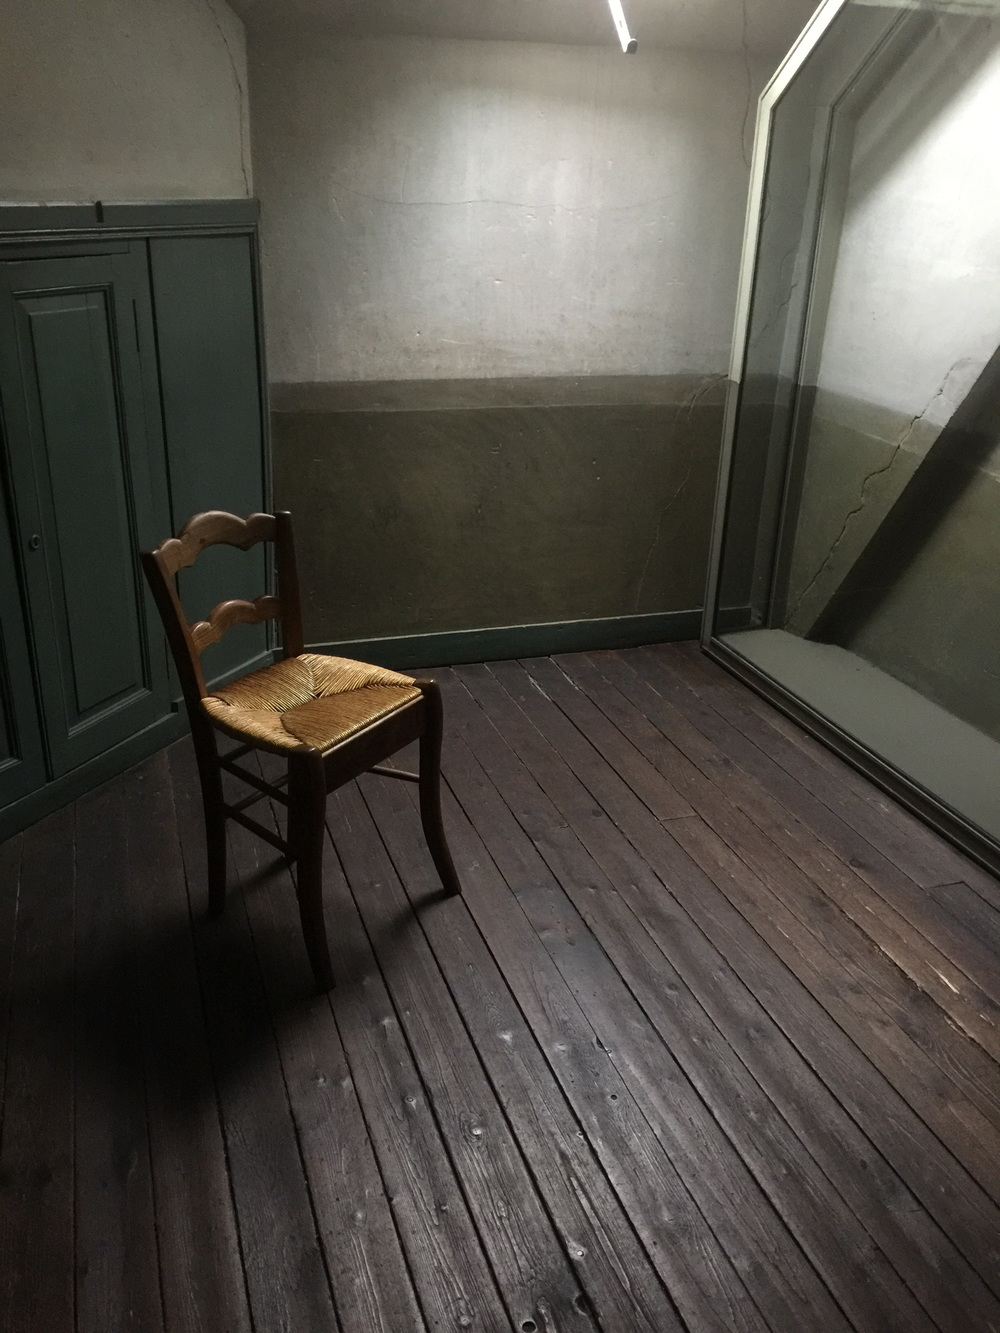 Van Gogh room where he spent the last 70 days of his life.